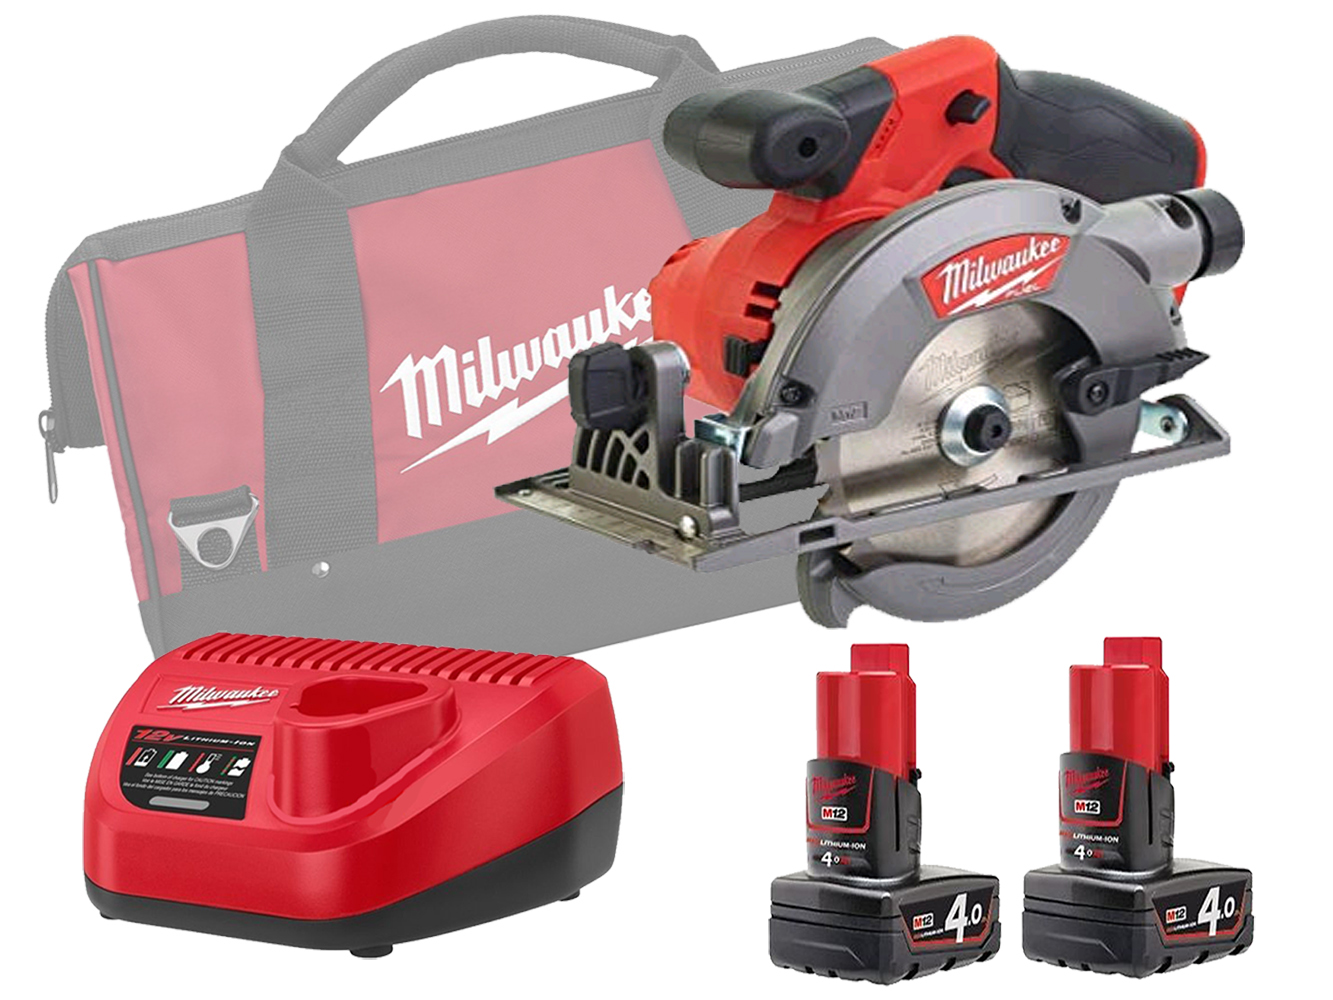 Milwaukee M12CCS44 12V Sub Compact 140mm (44mm) Circular Saw Brushless - 4.0ah Pack